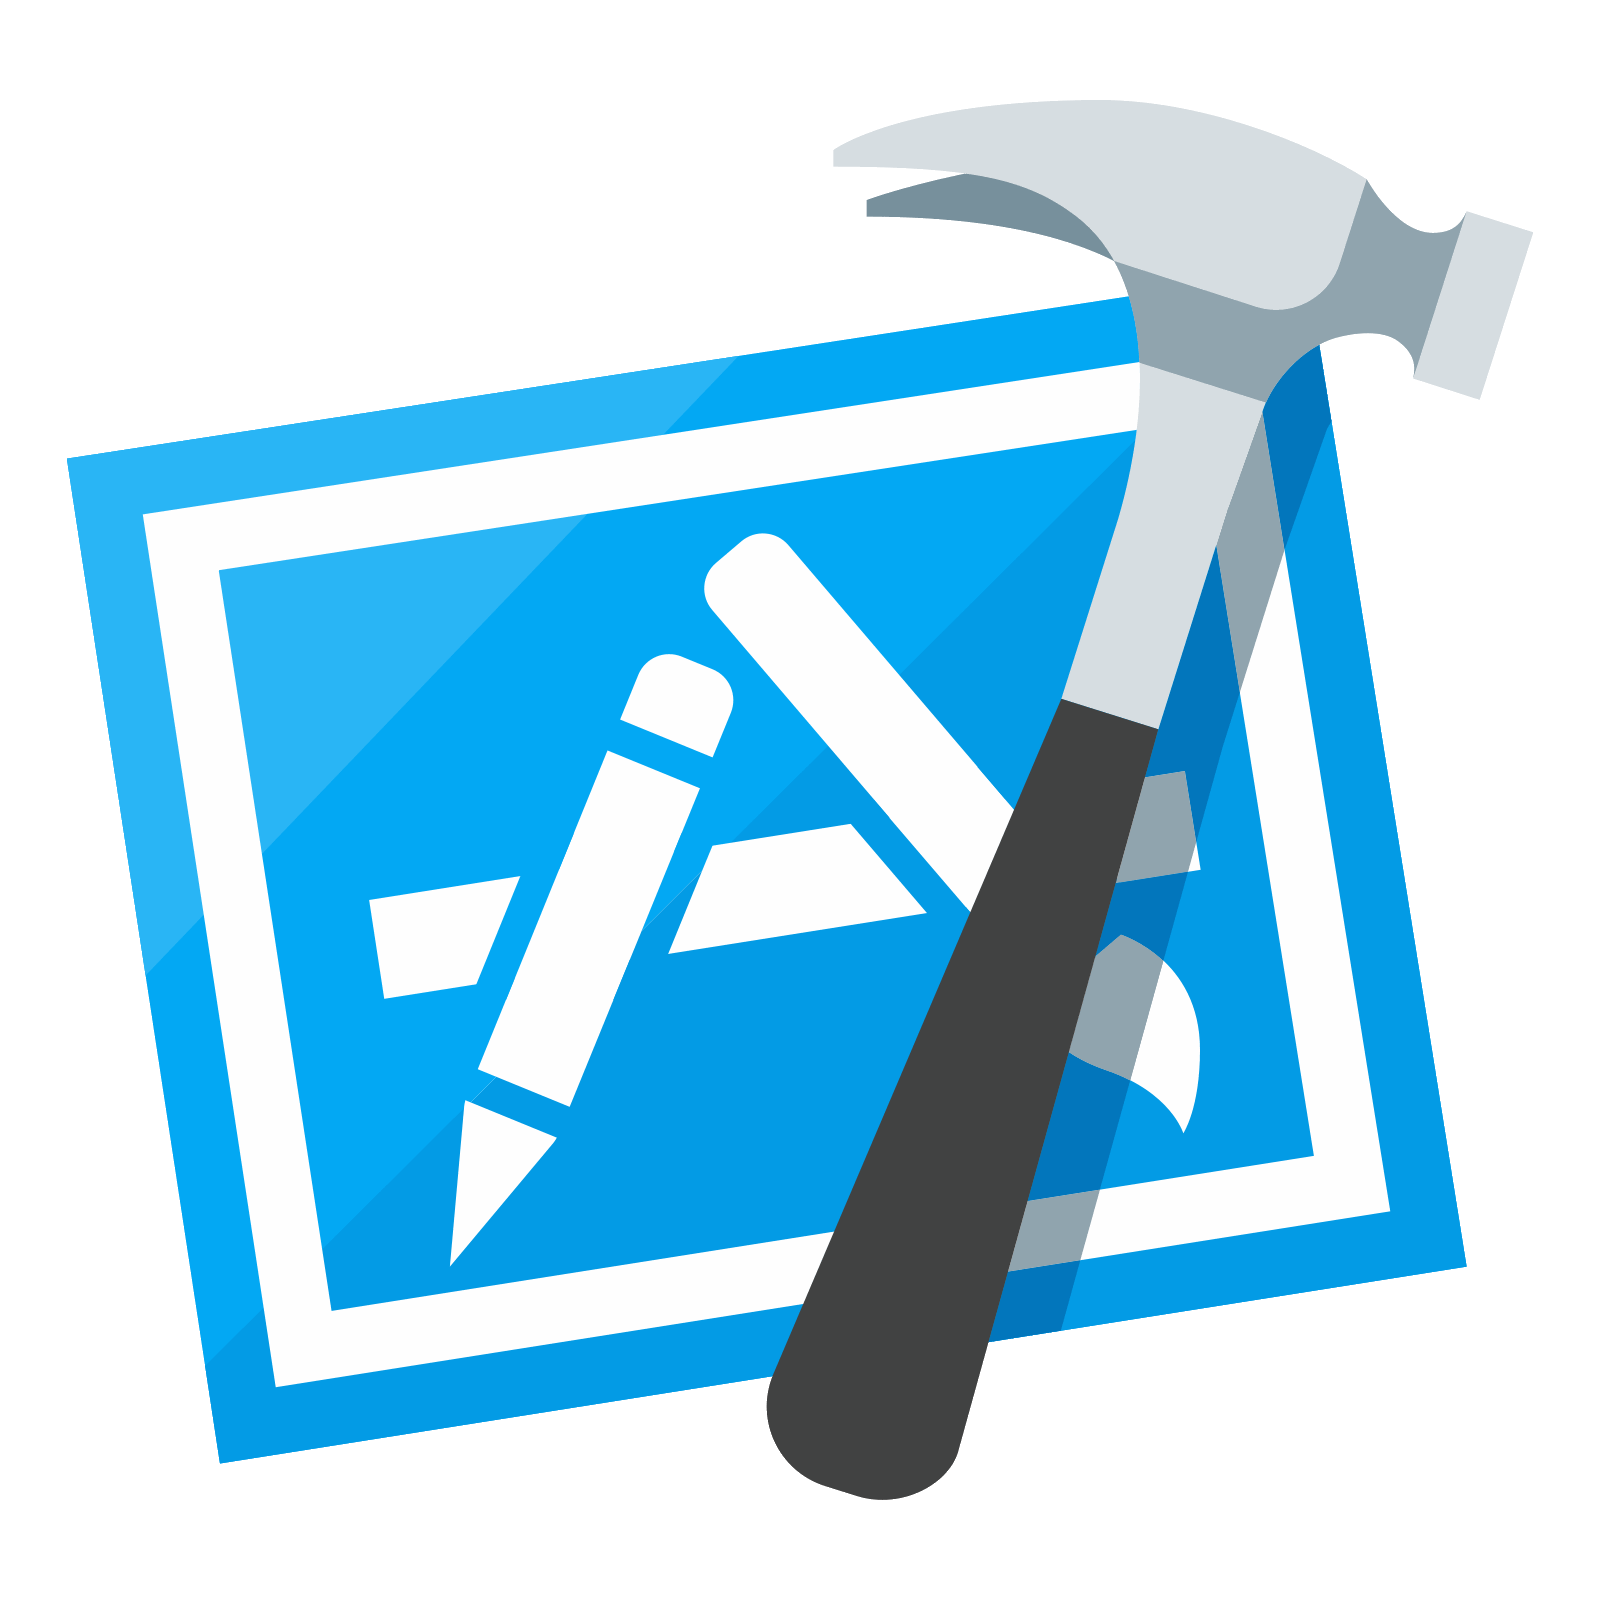 xcode_iOS dev tools